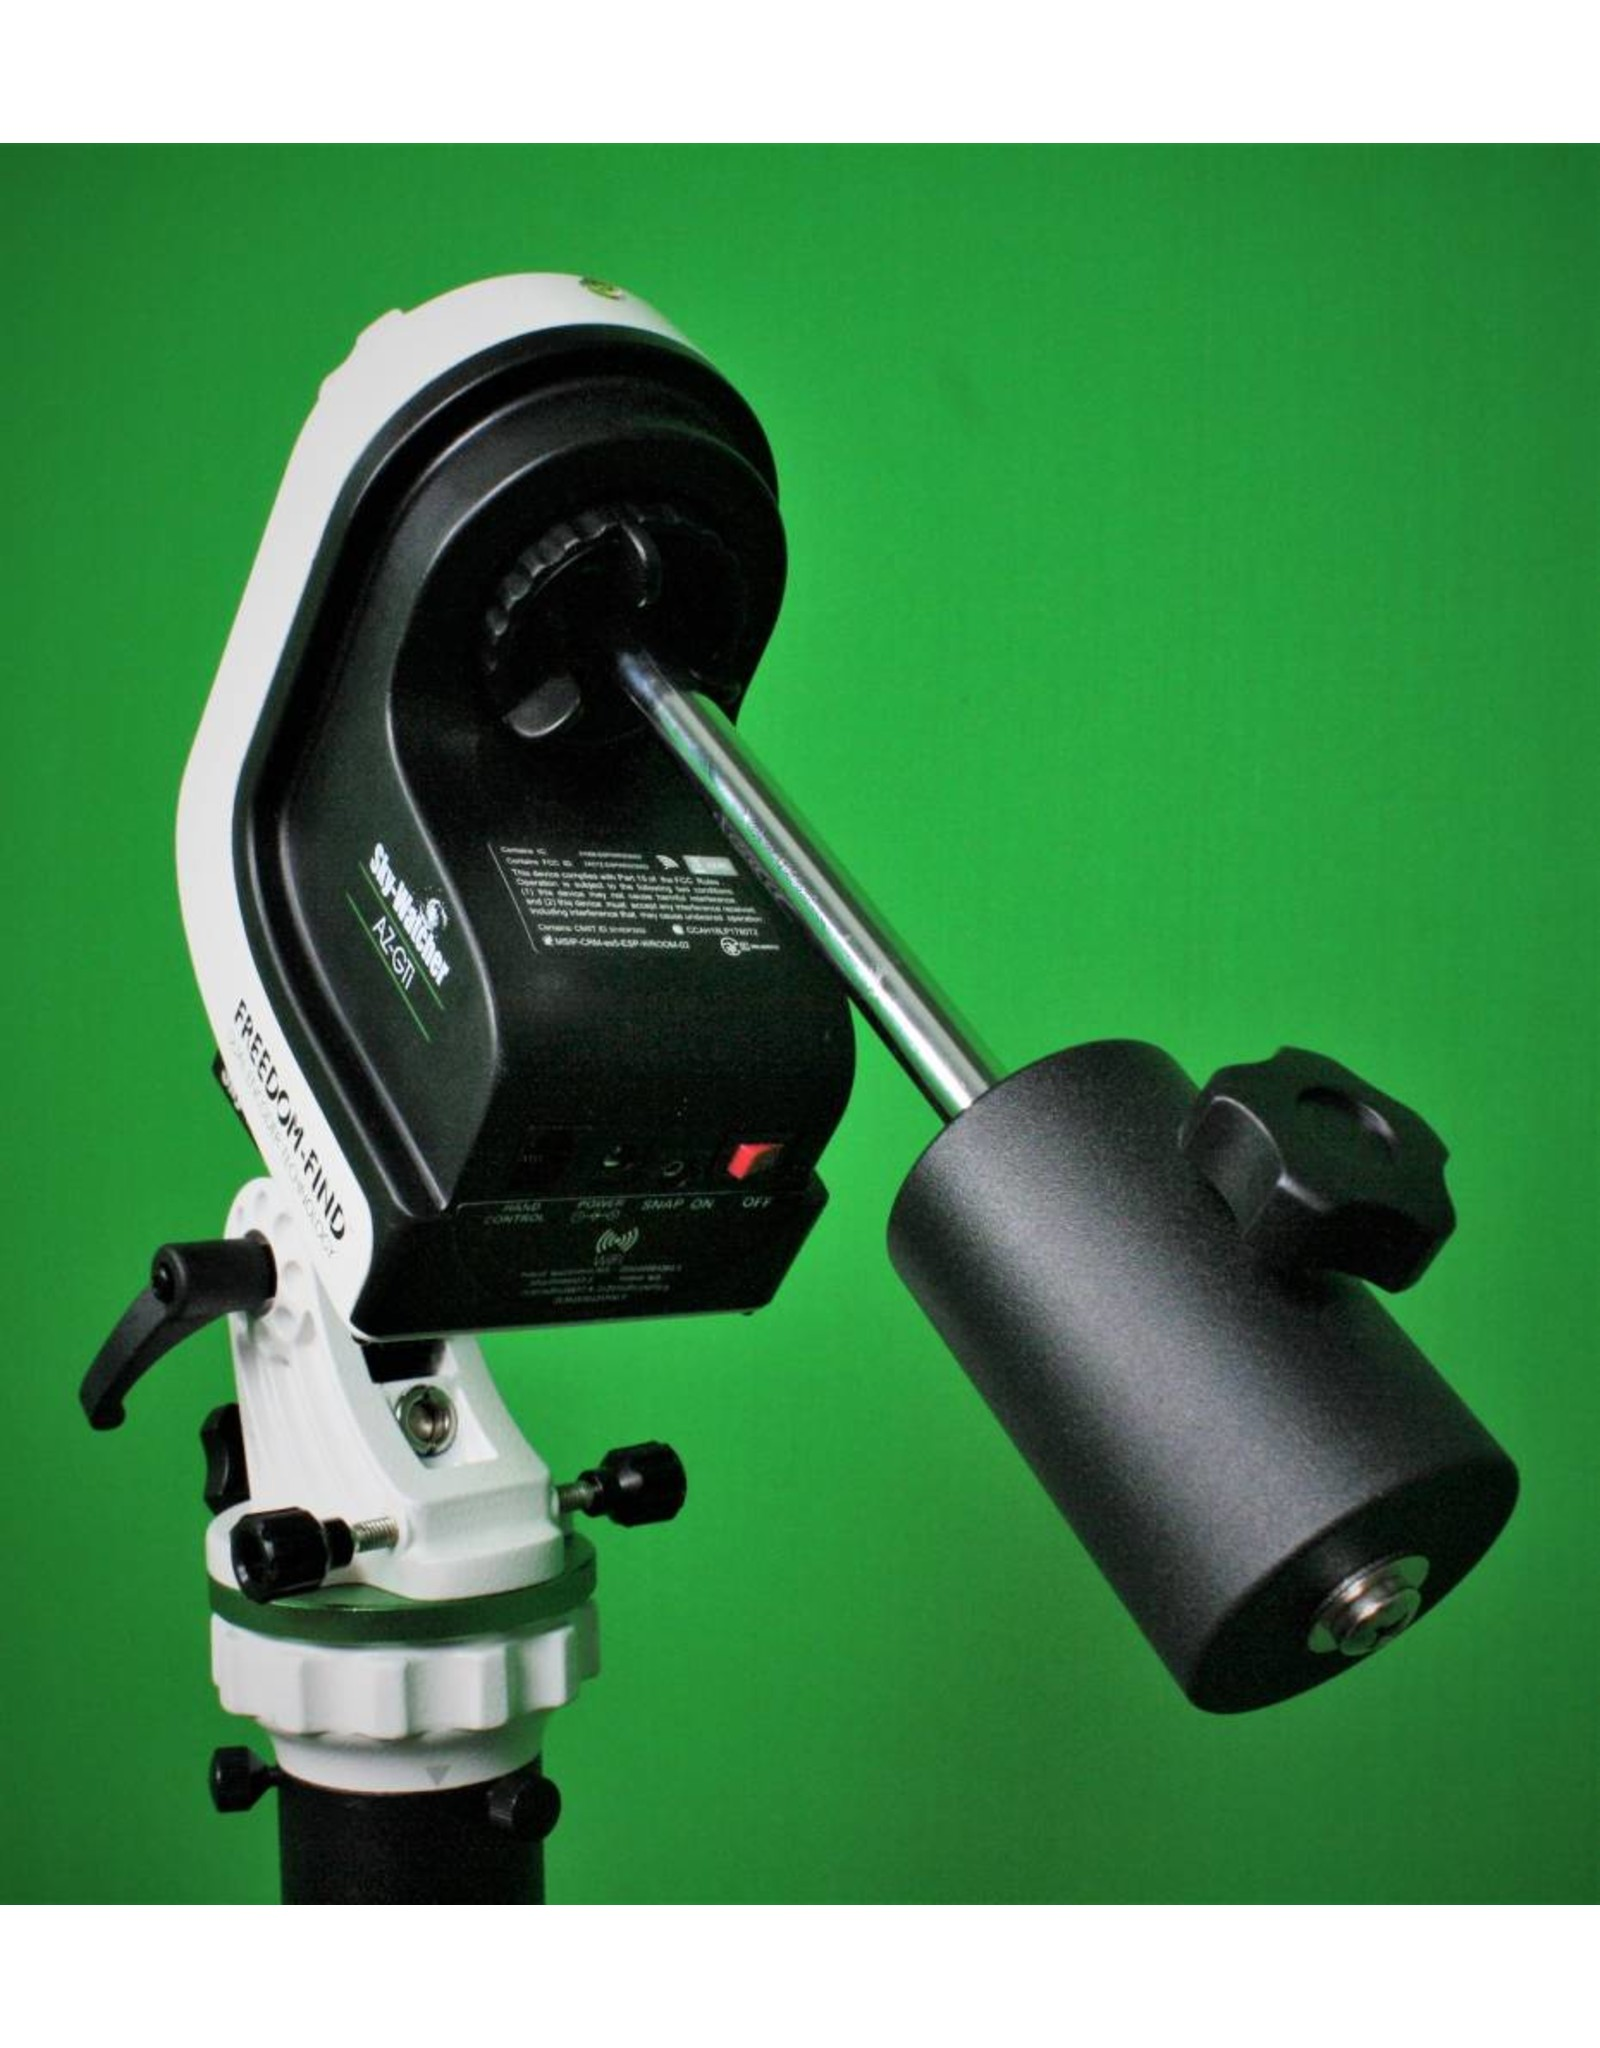 Sky-Watcher Sky-Watcher AZ-Gti Deluxe EQ Mount (A CCTS Exclusive!)